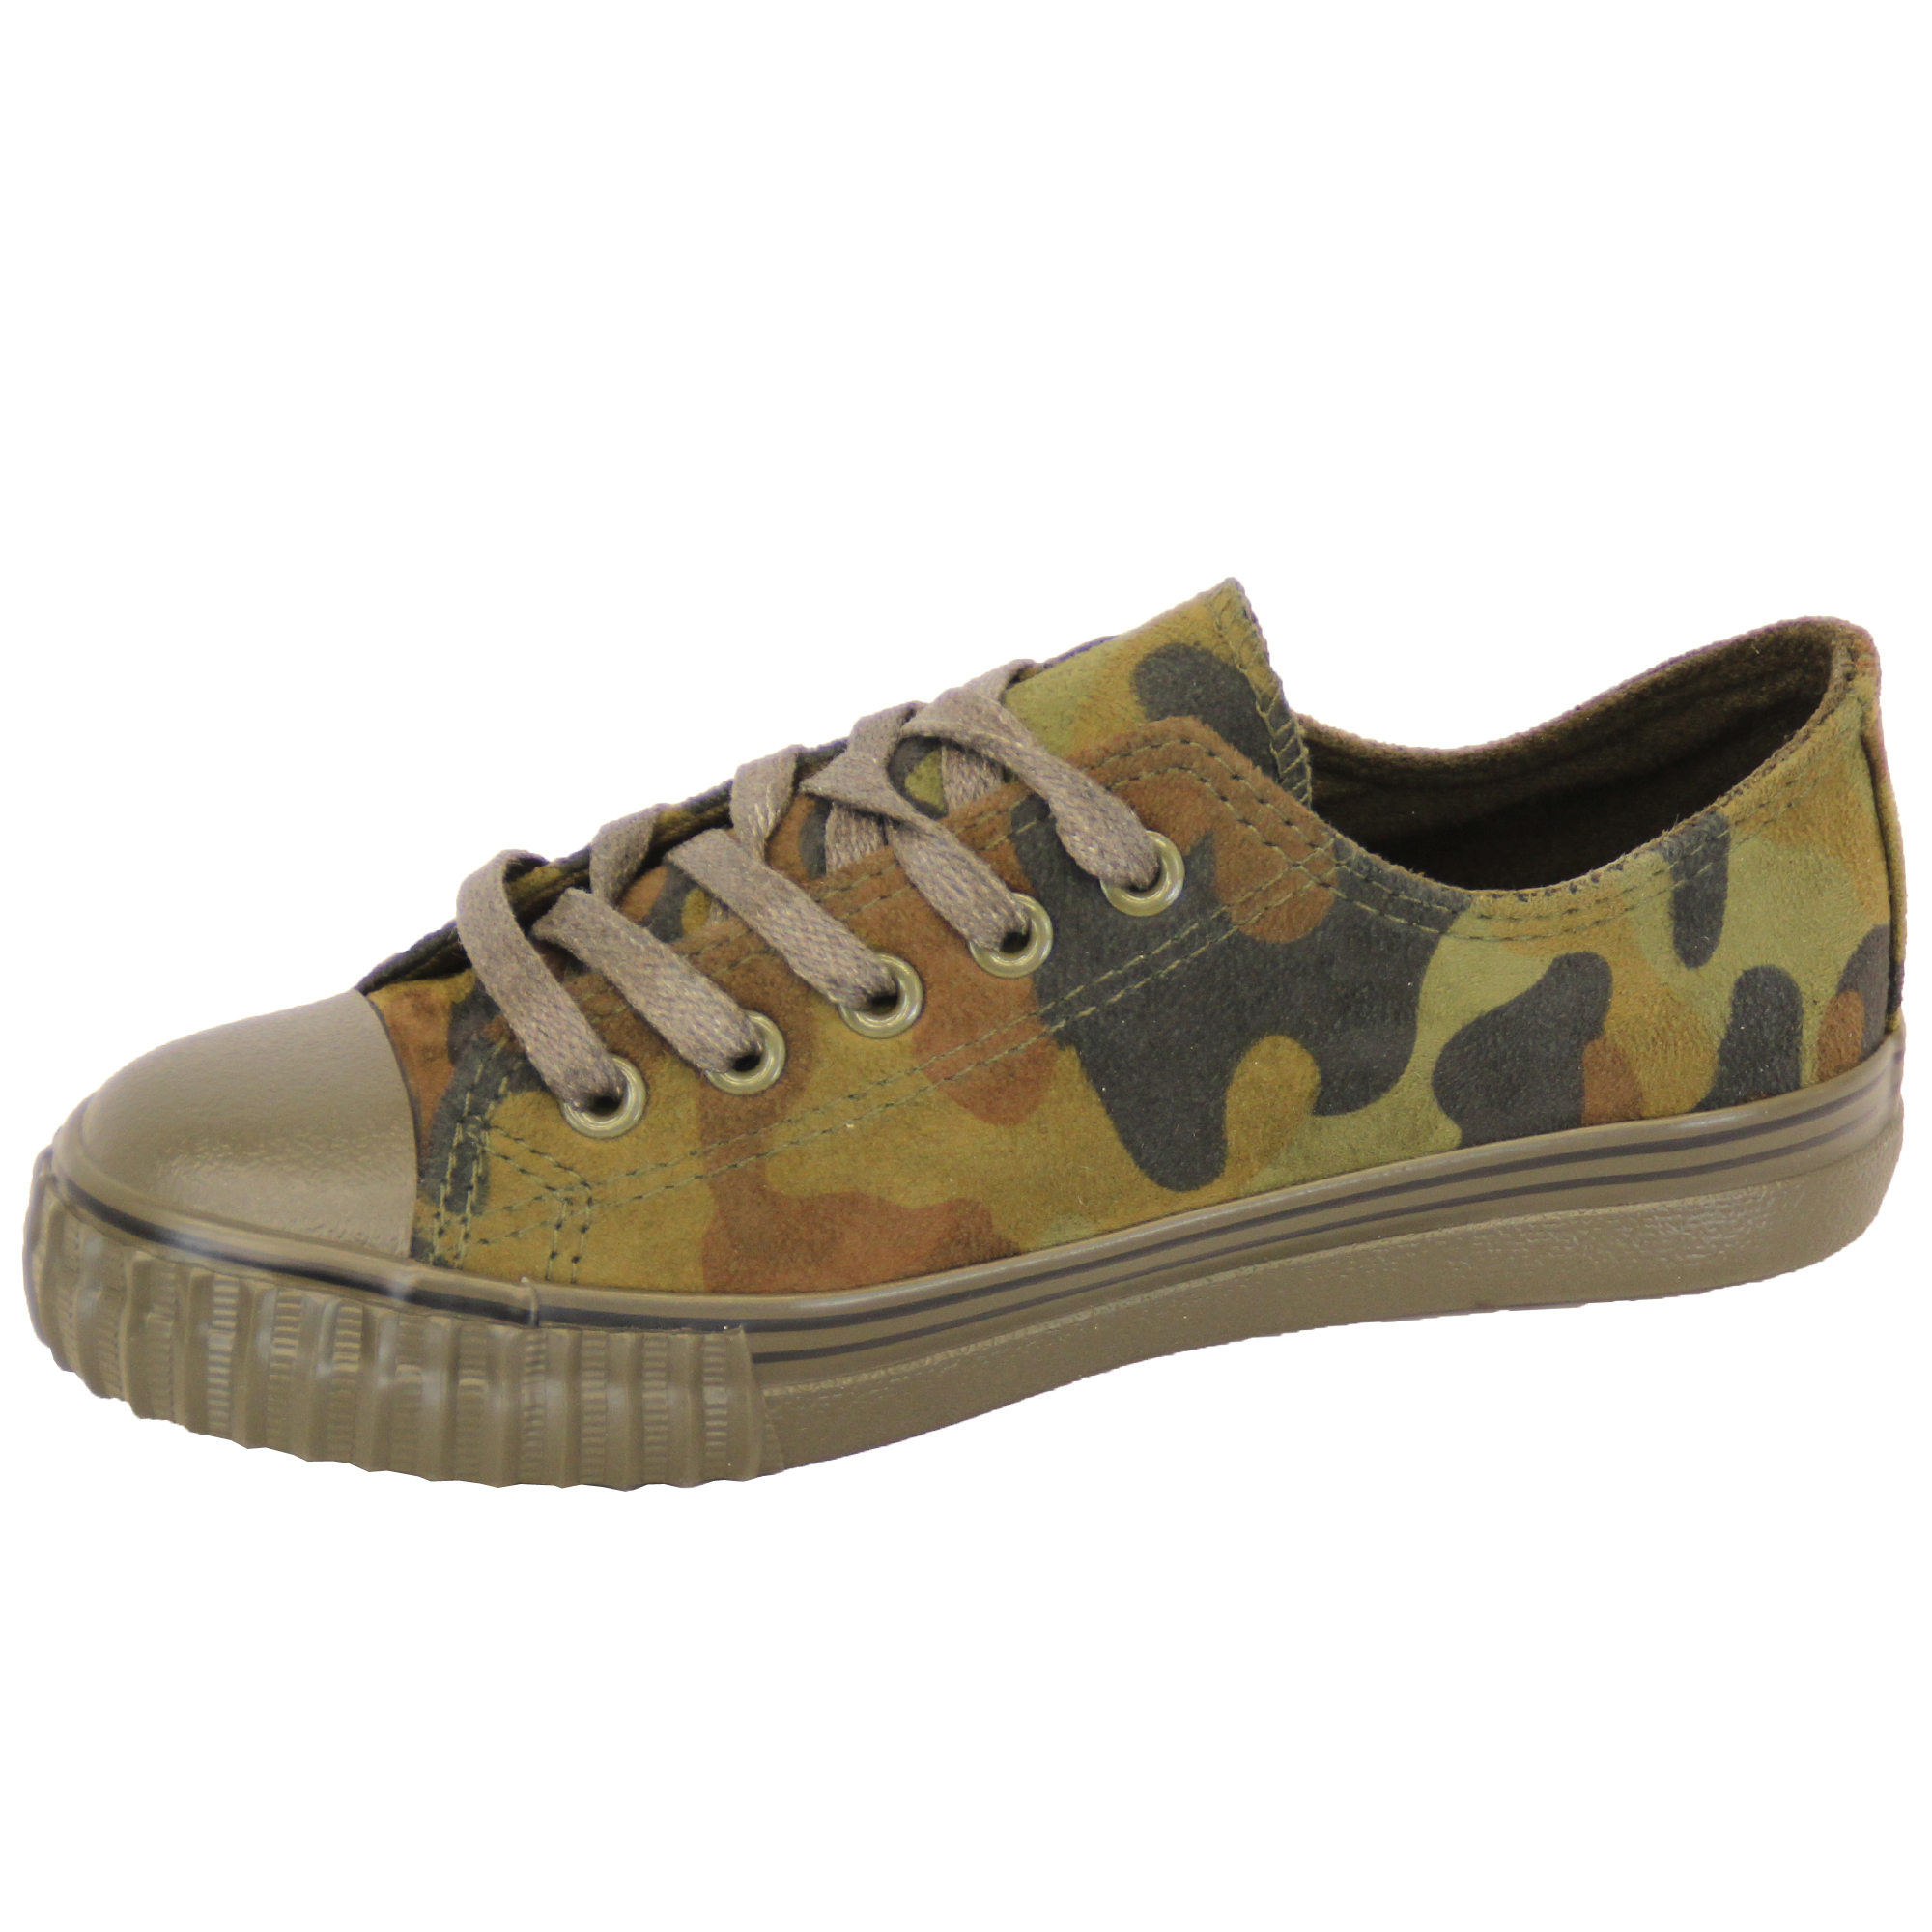 Boys-Girls-Camouflage-Pumps-Kids-Military-Trainers-Lace-Up-Shoes-Casual-Summer thumbnail 7